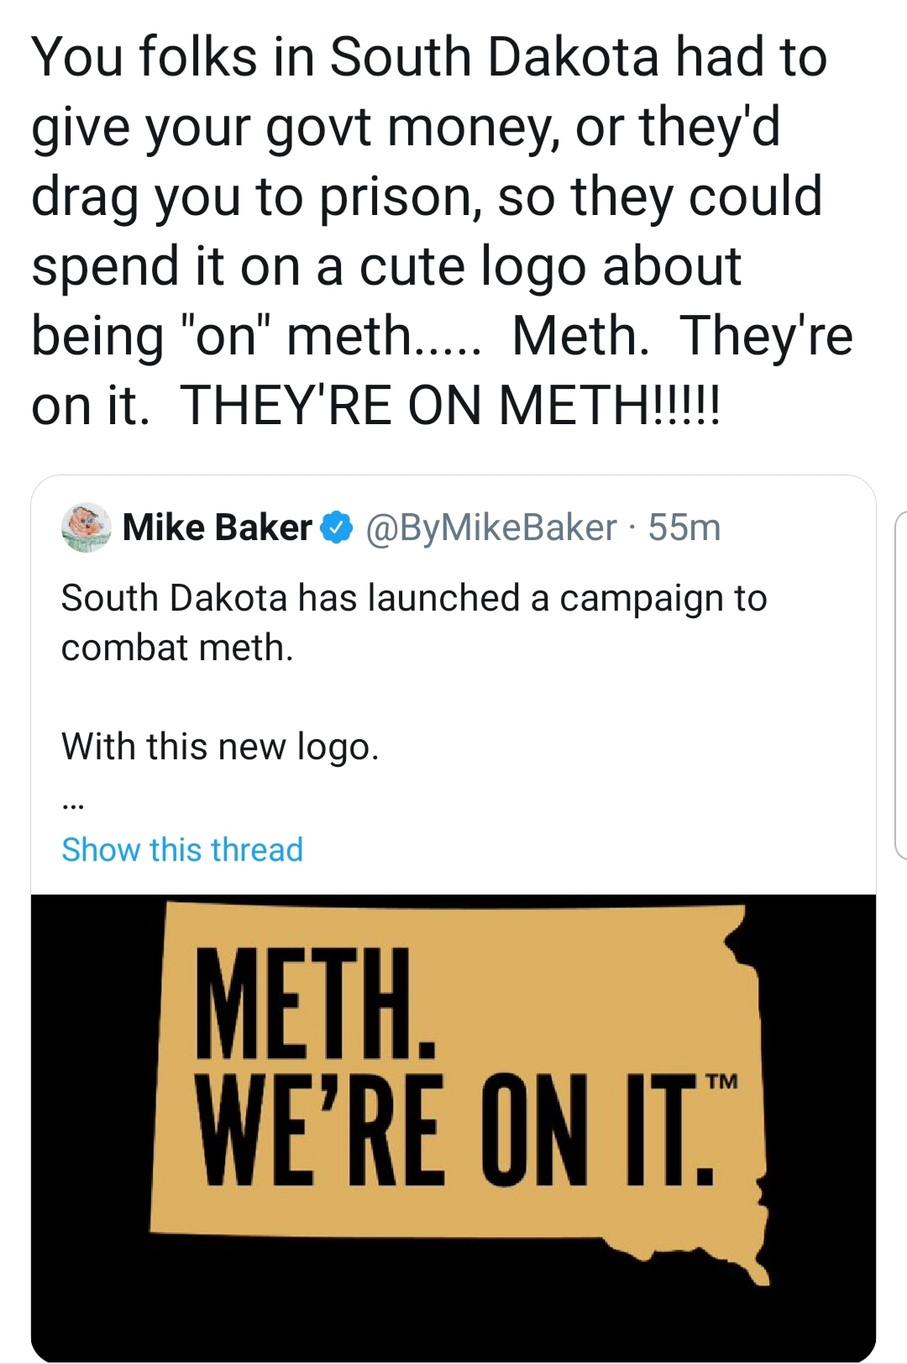 They're on METH - meme